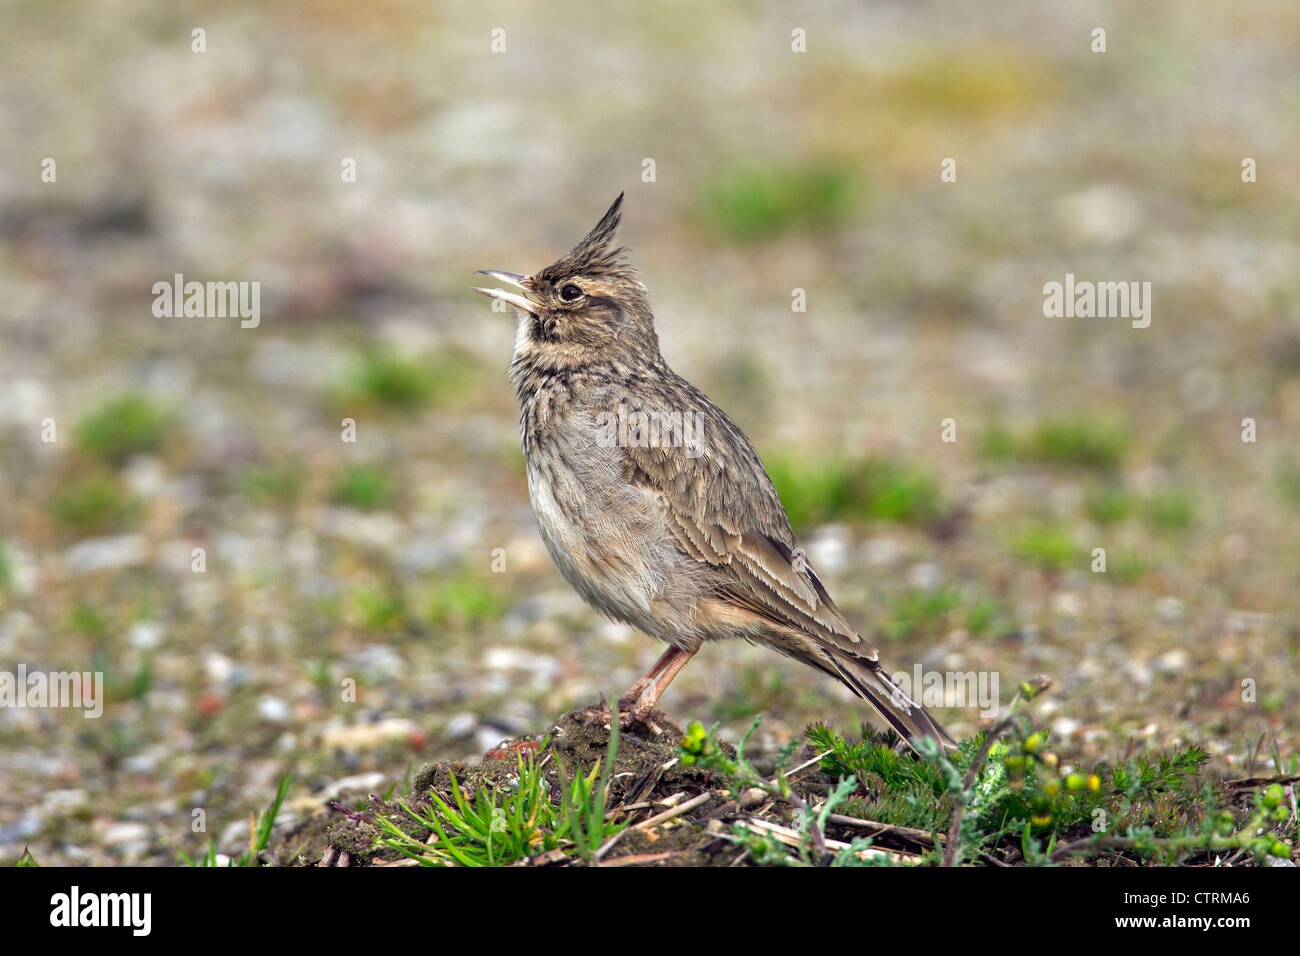 Crested lark (Galerida cristata) male sitting on the ground and calling, Germany Stock Photo